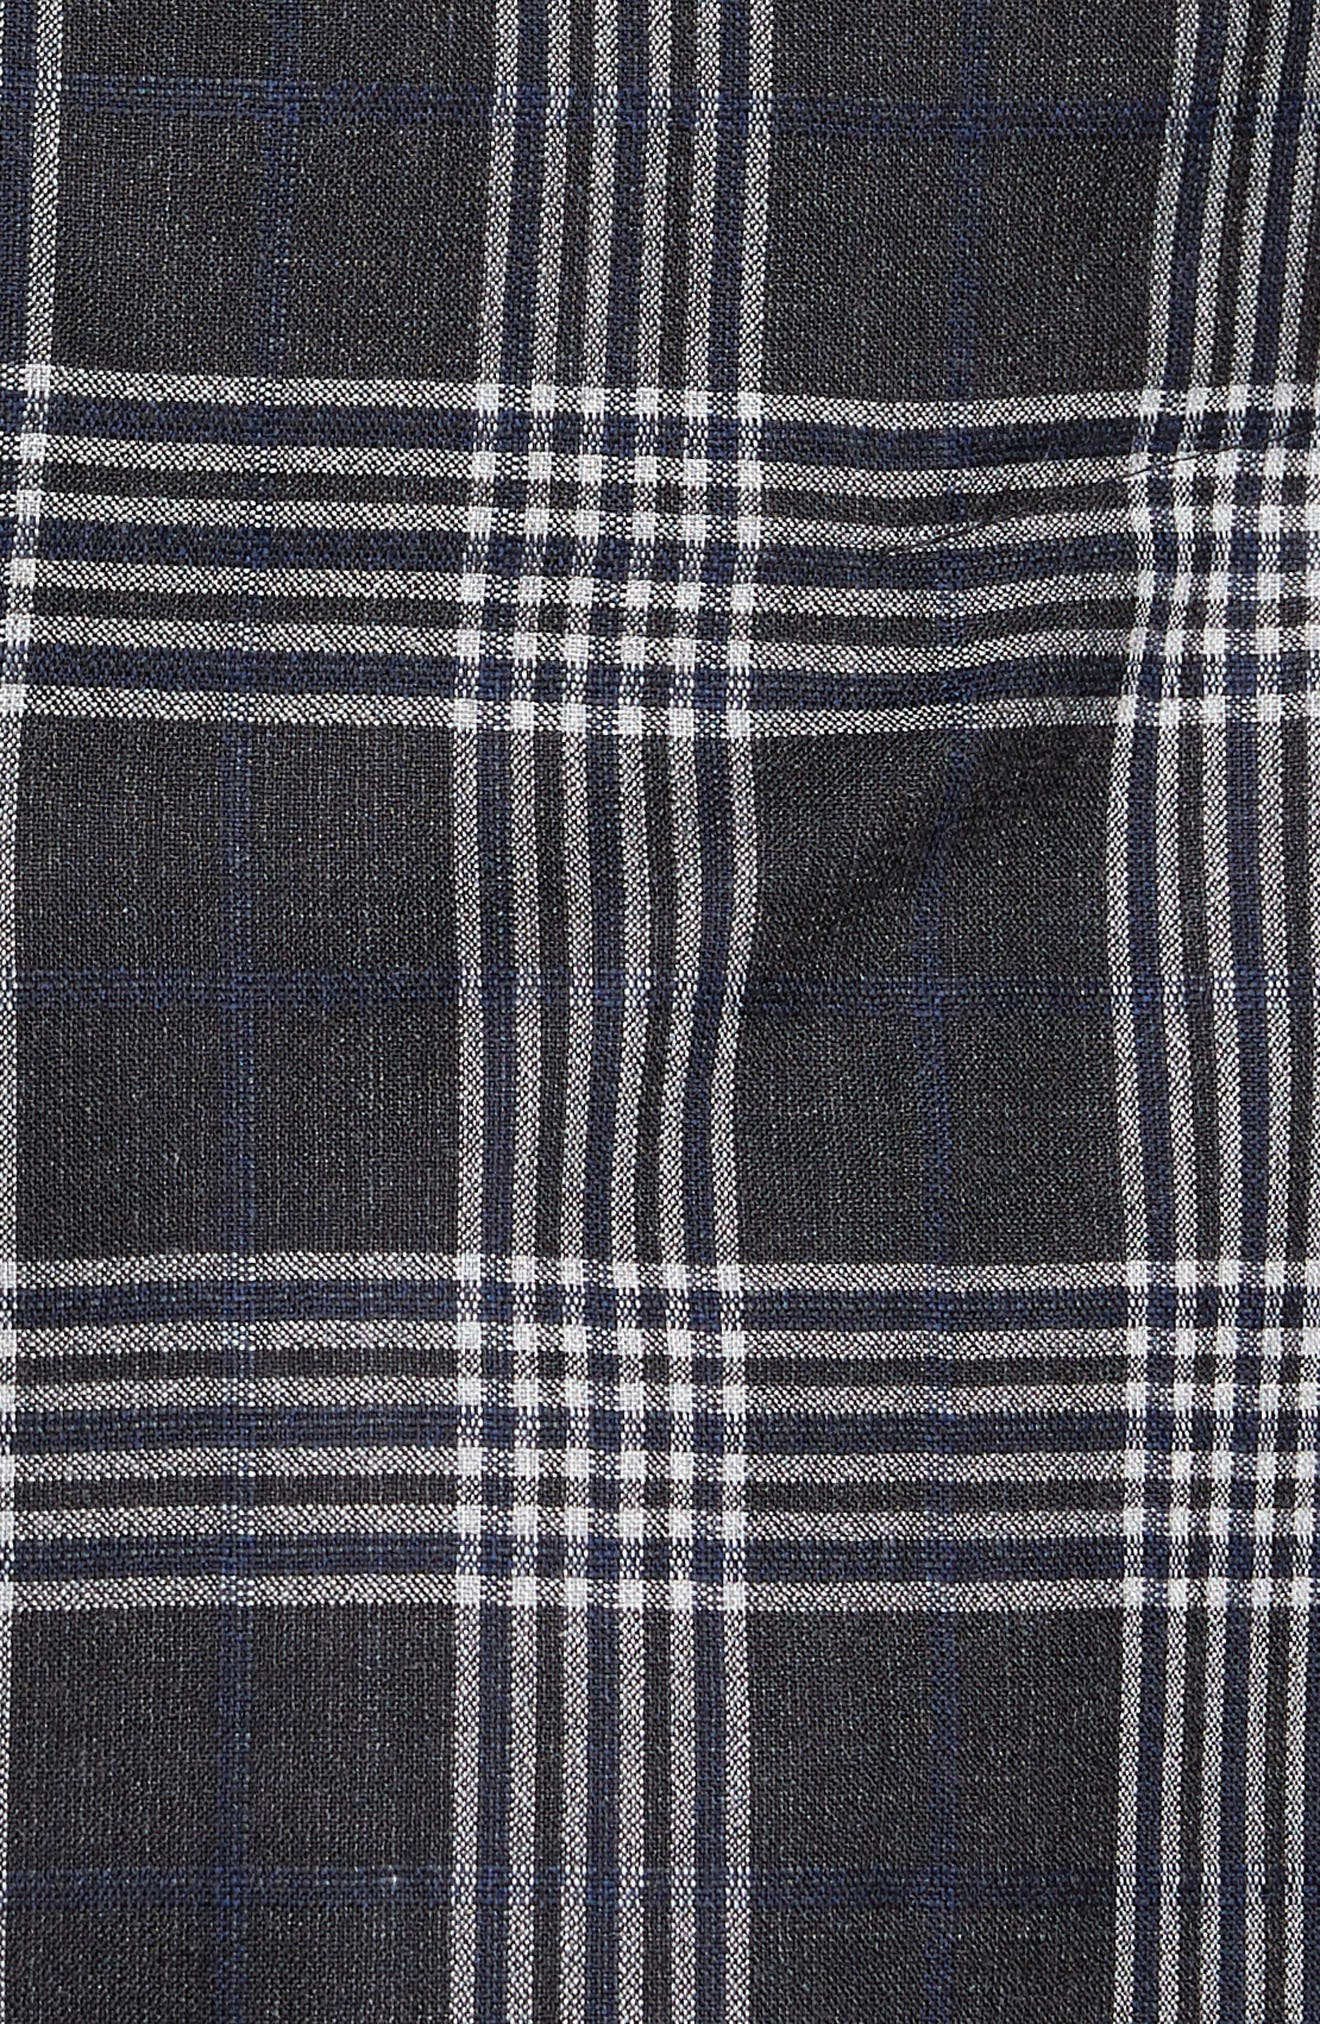 Modern Fit Plaid Wool & Silk Sport Coat,                             Alternate thumbnail 6, color,                             020